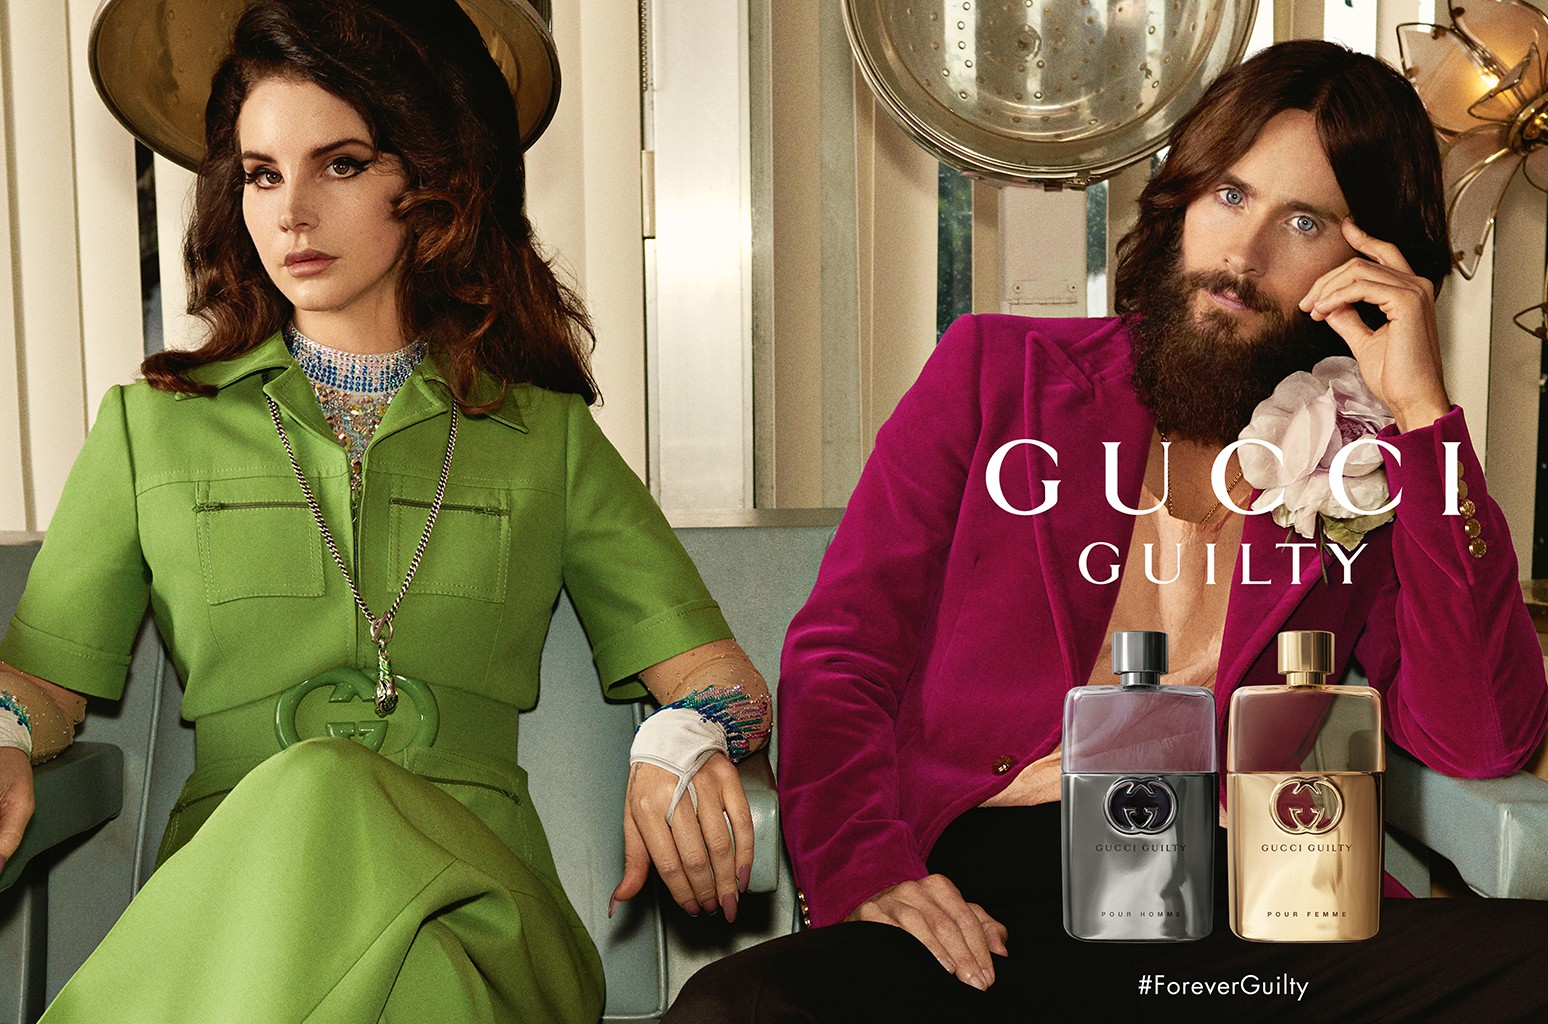 Lana Del Rey Stars In Gucci Guilty Campaign With Jared Leto Courtney Love Billboard